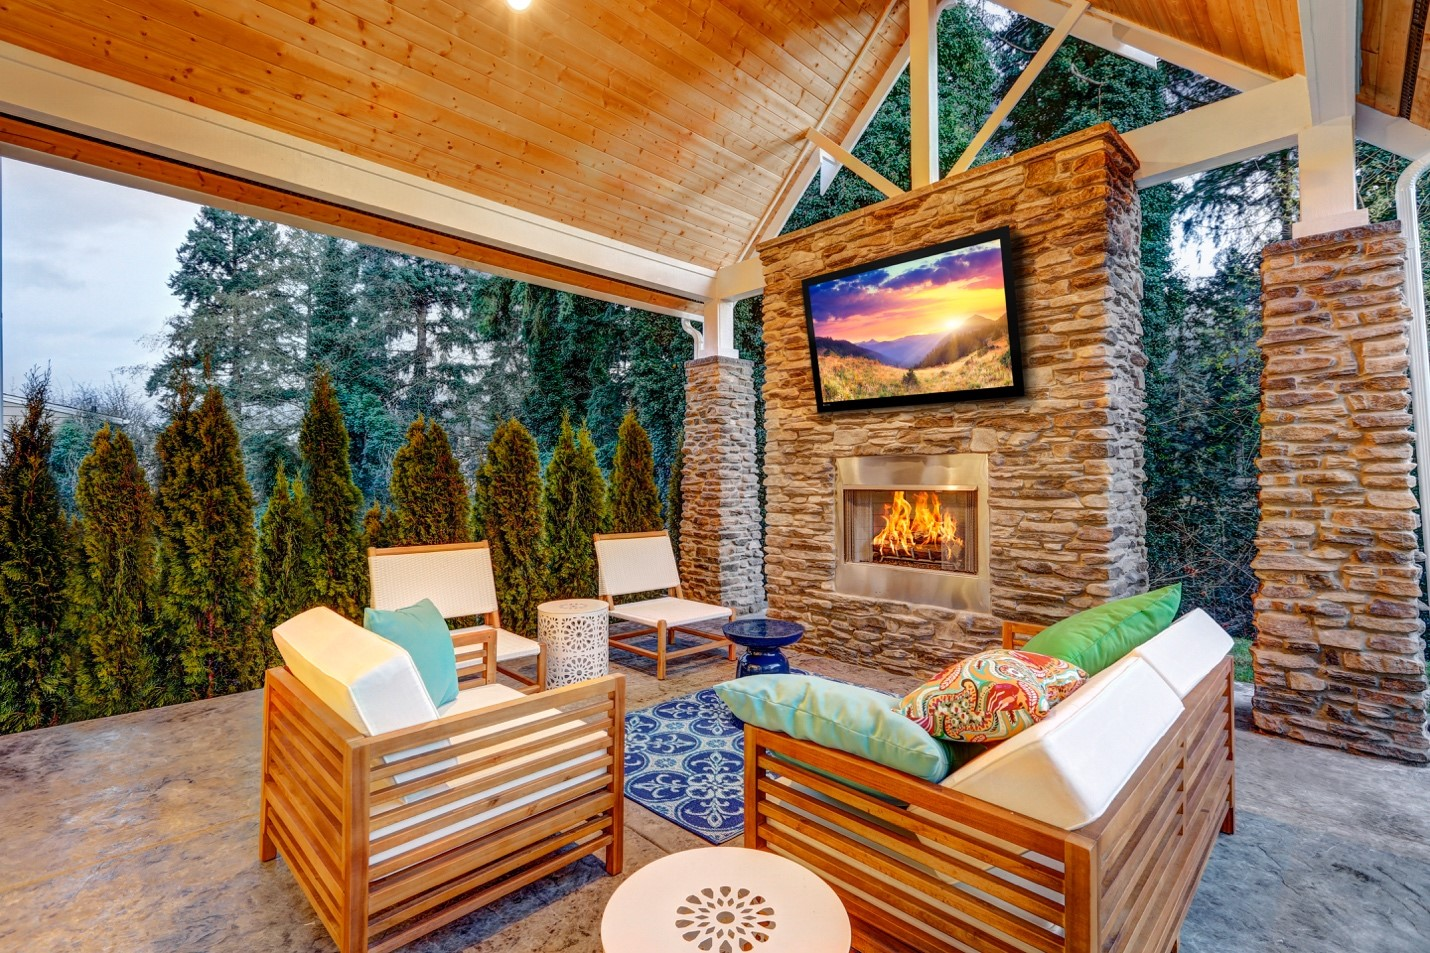 Looking For An Outdoor TV? Here's What You'll Want to Know.